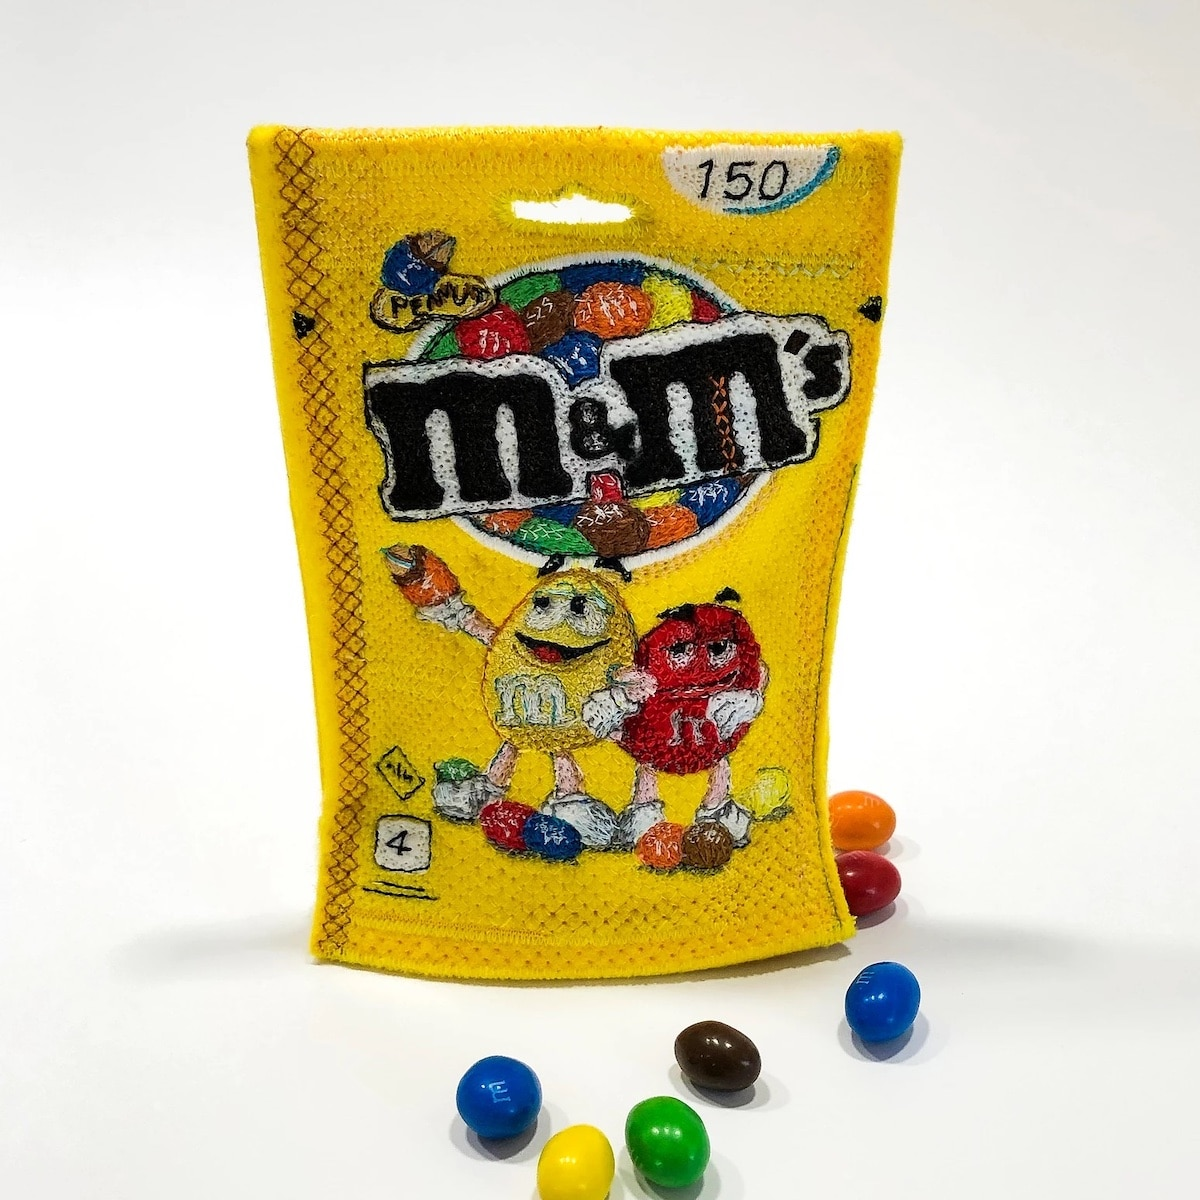 Felt and Embroidery M&M's